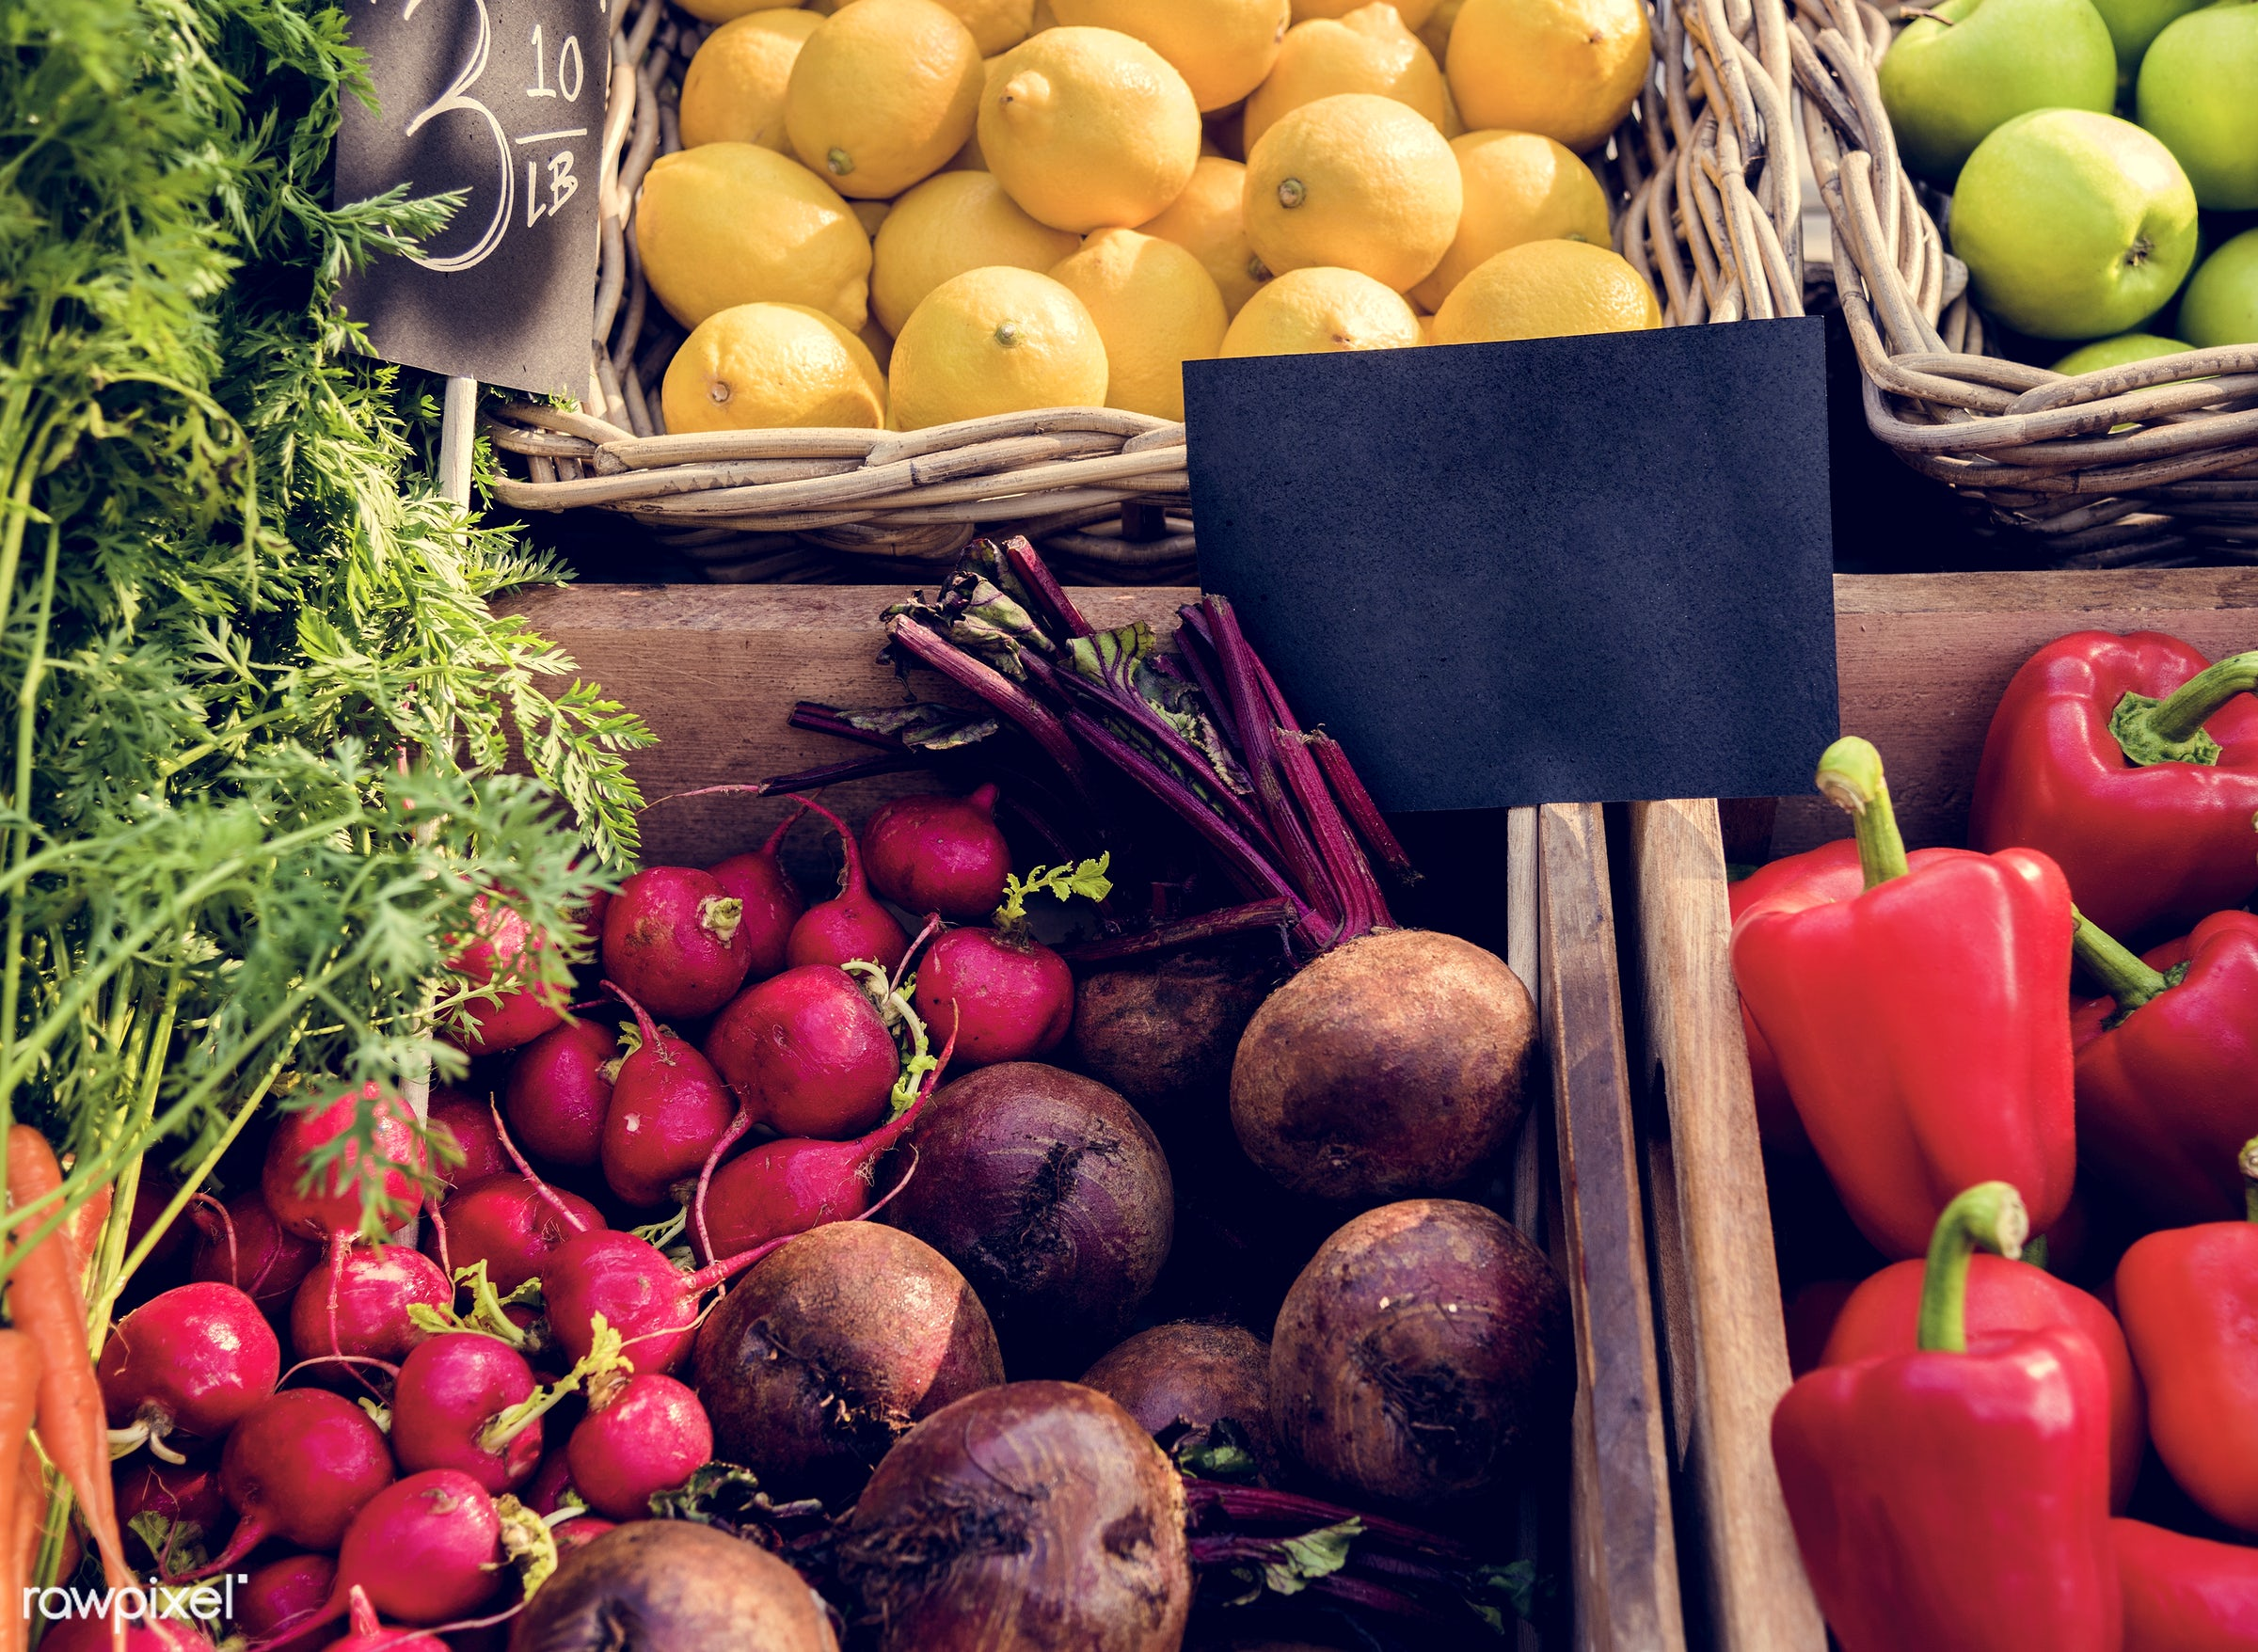 shop, stall, consumer, farmer, display, fair, tomatoes, sign, nutrition, price, market, eggs, cabbage, food, outdoors, trees...